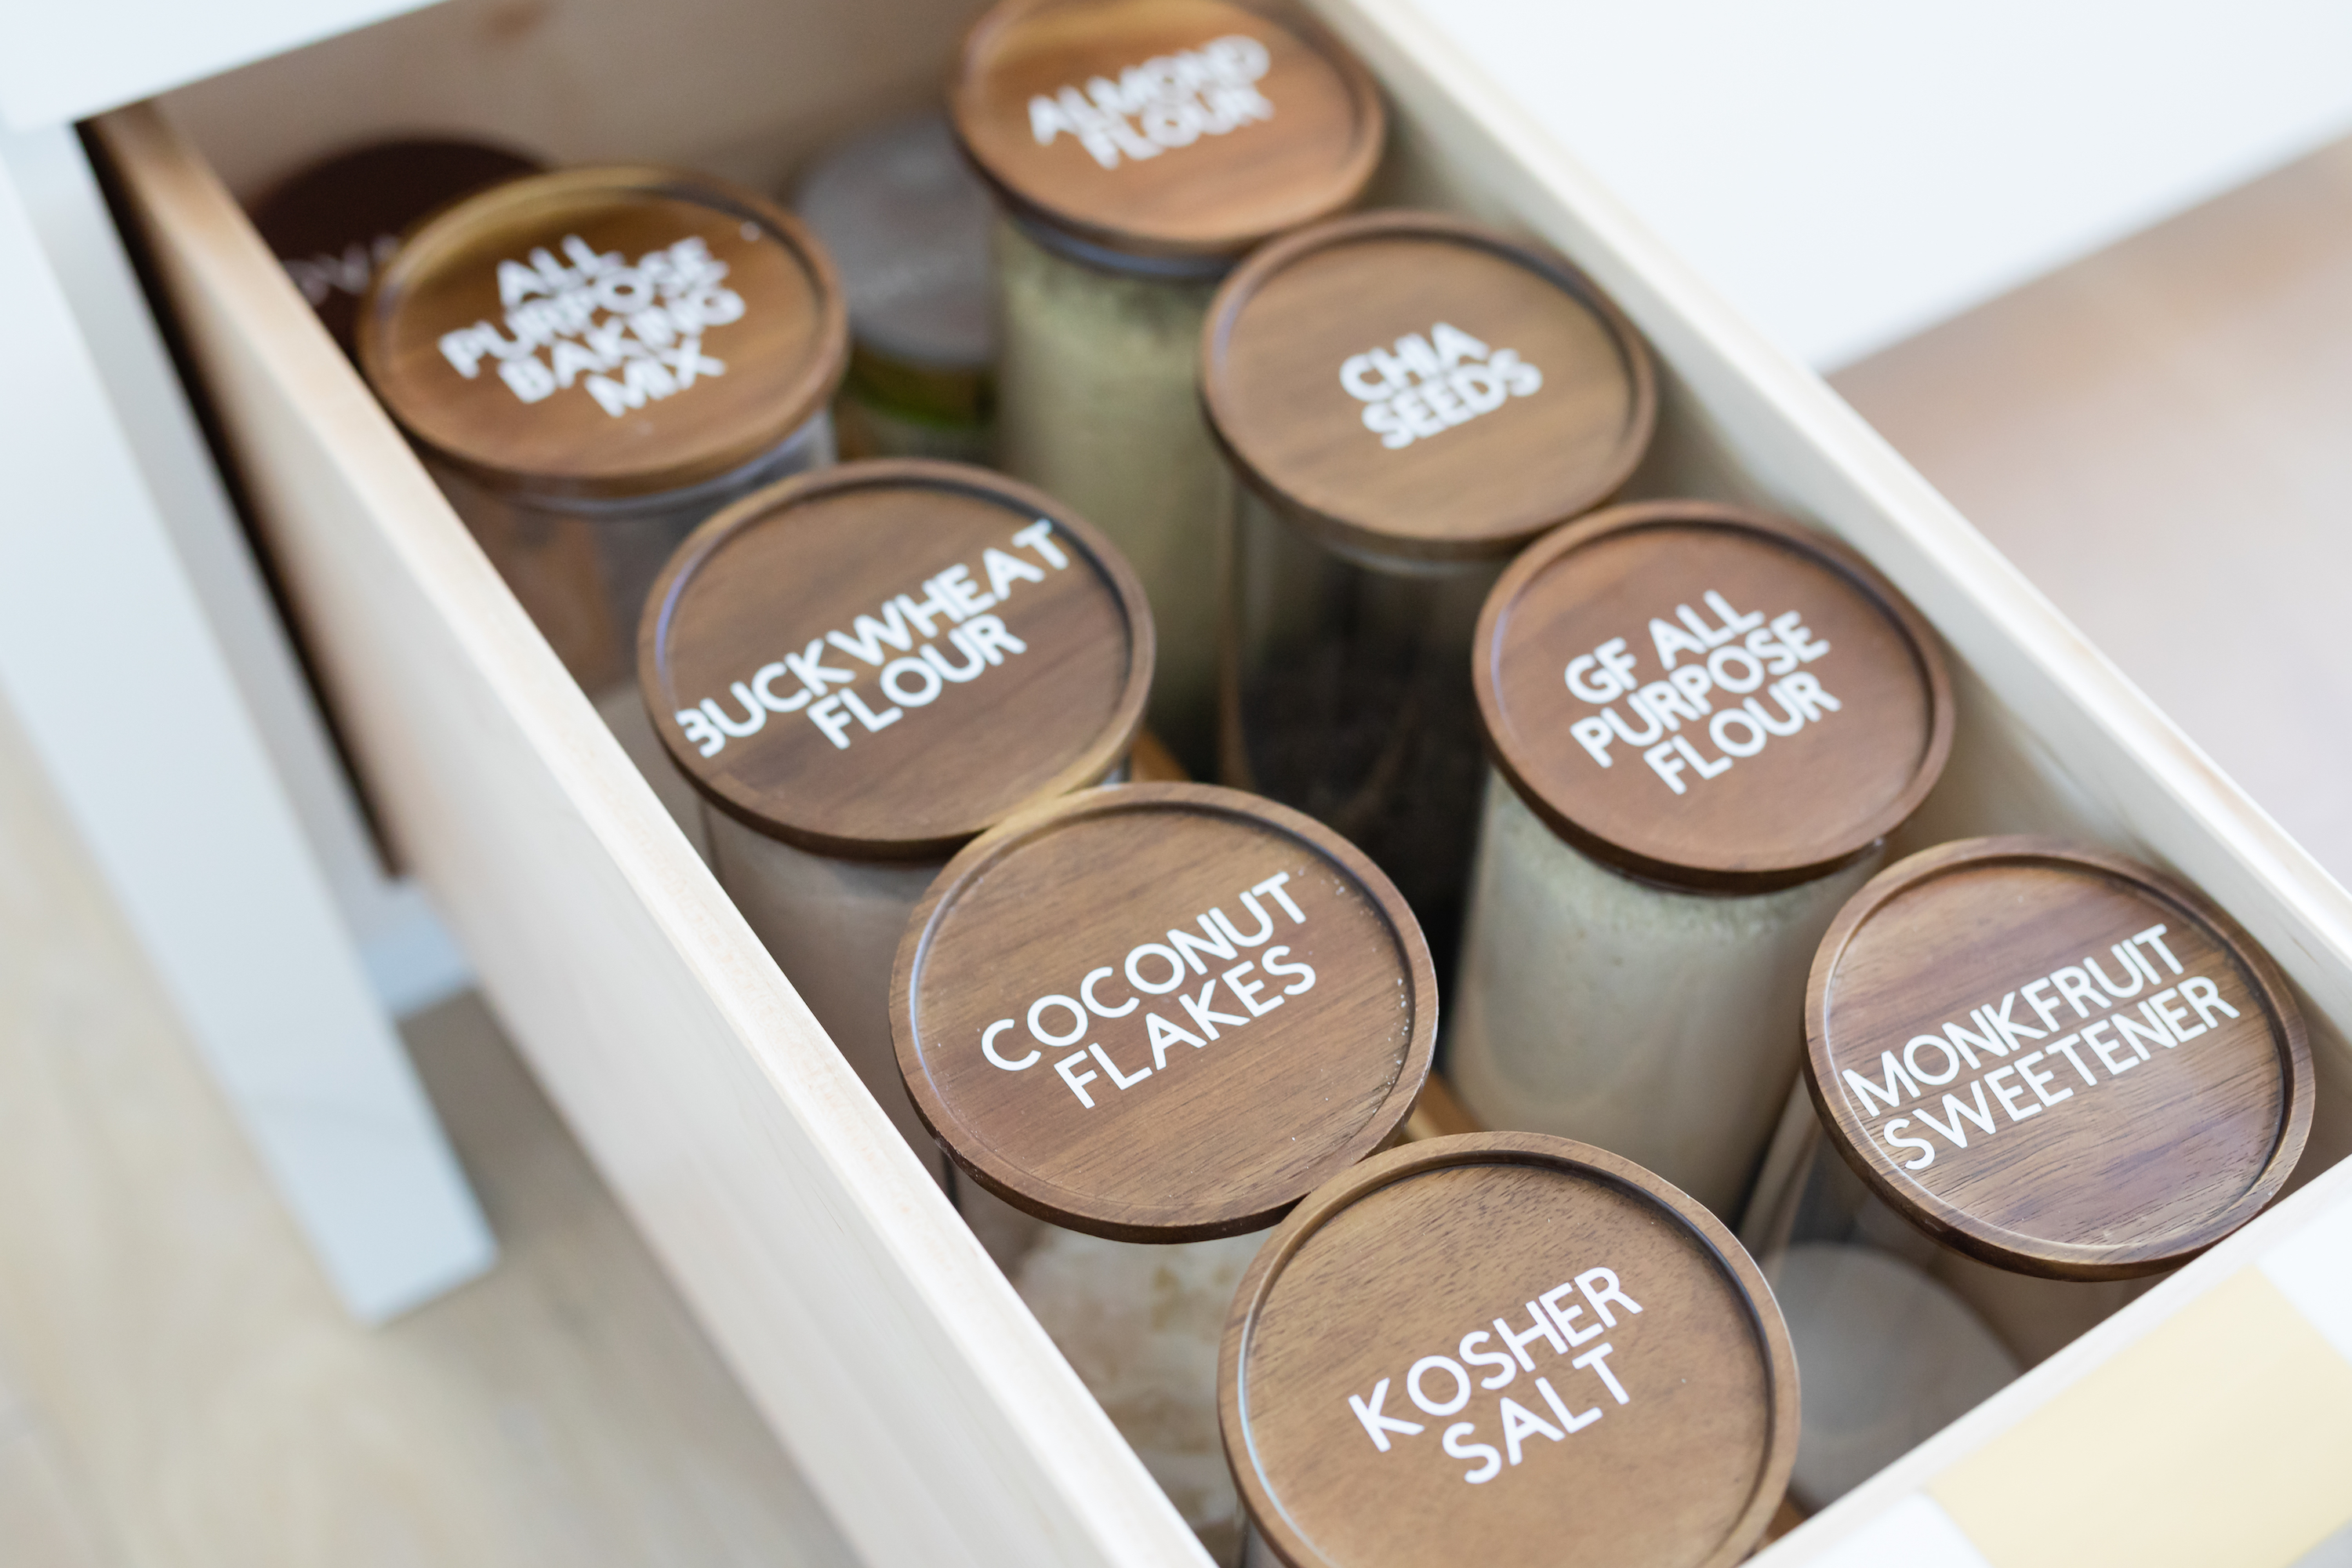 Photo of a kitchen drawer with high-end spice containers with white labels.